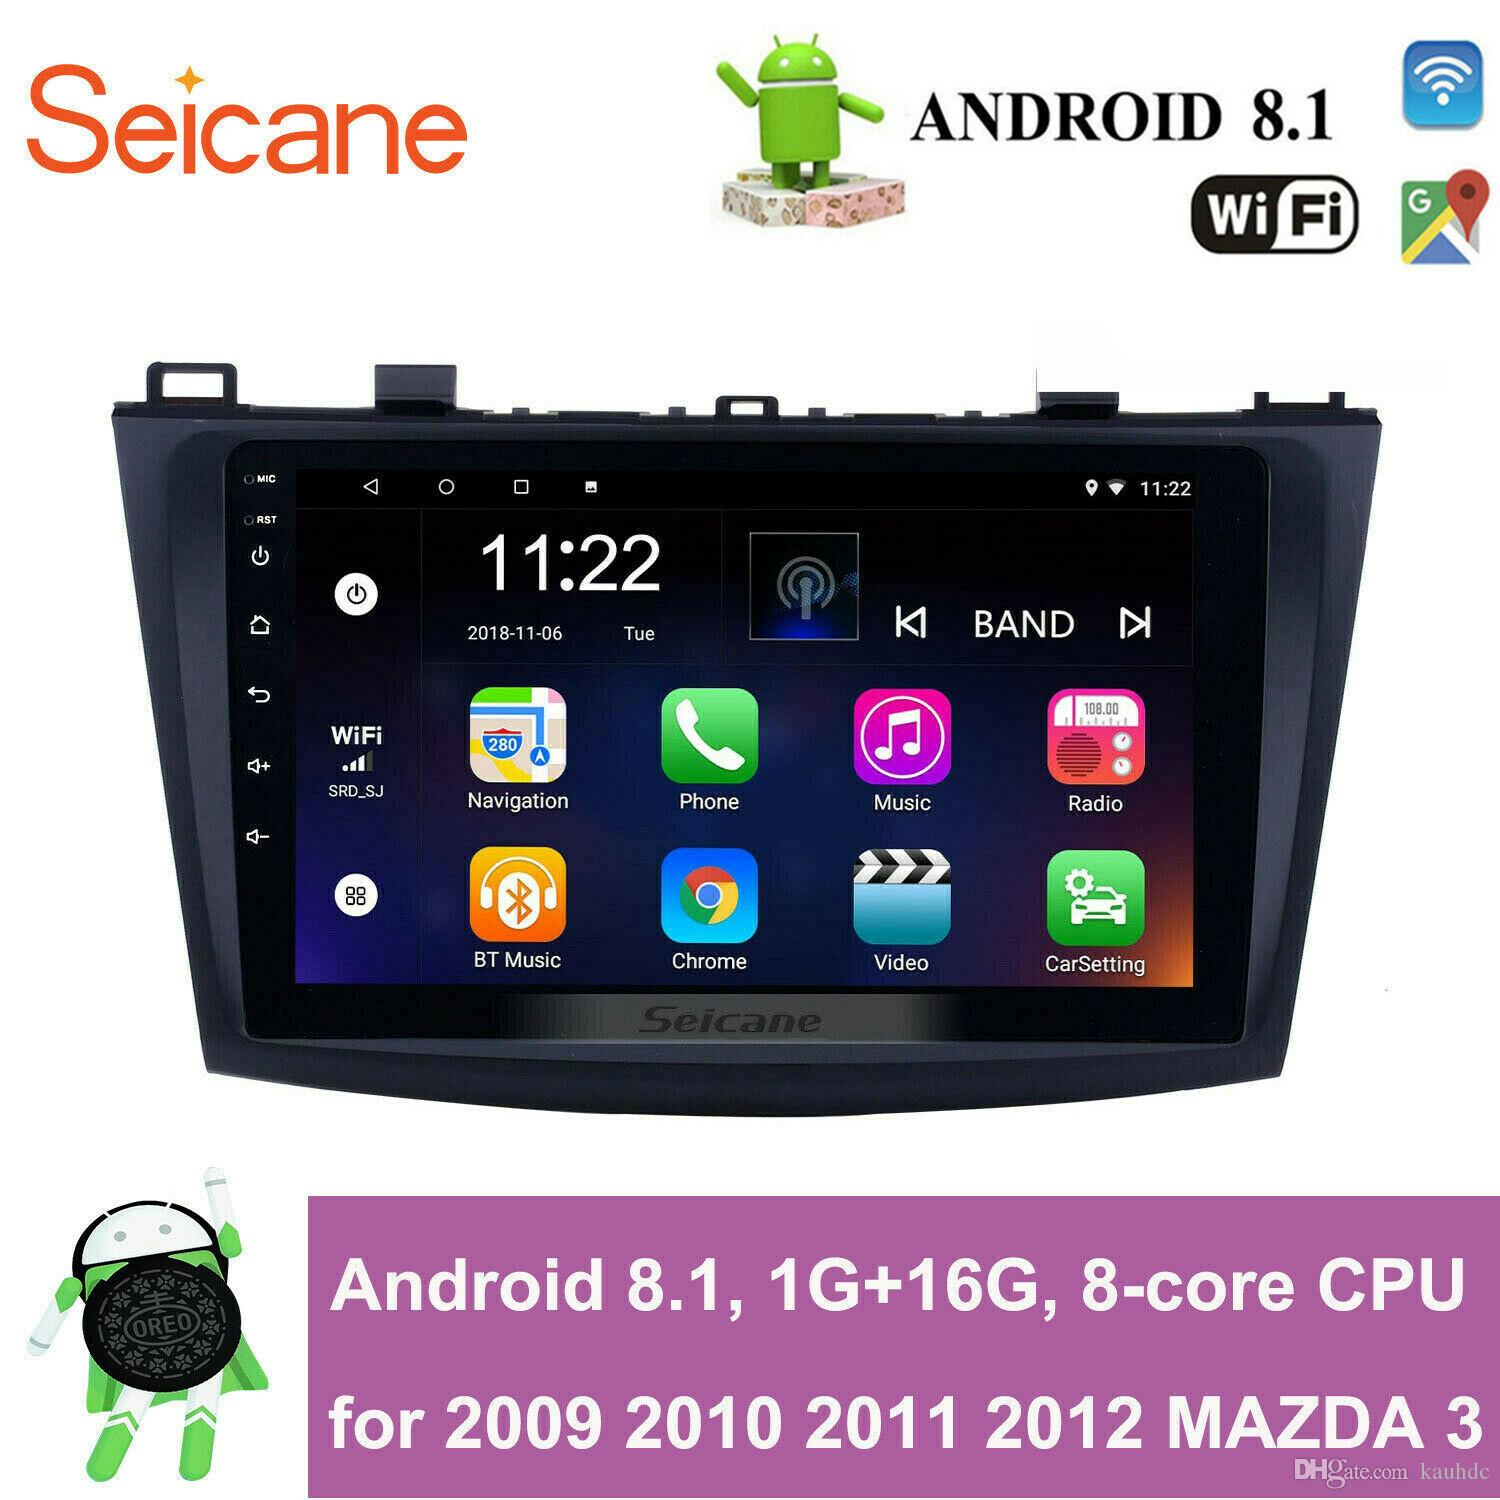 8-core 9 inch Touch Screen Android 8.1 GPS Navi Car Stereo for 2009 2010 2011 2012 MAZDA 3 with WIFI USB support Rearview Camera Mirror Link